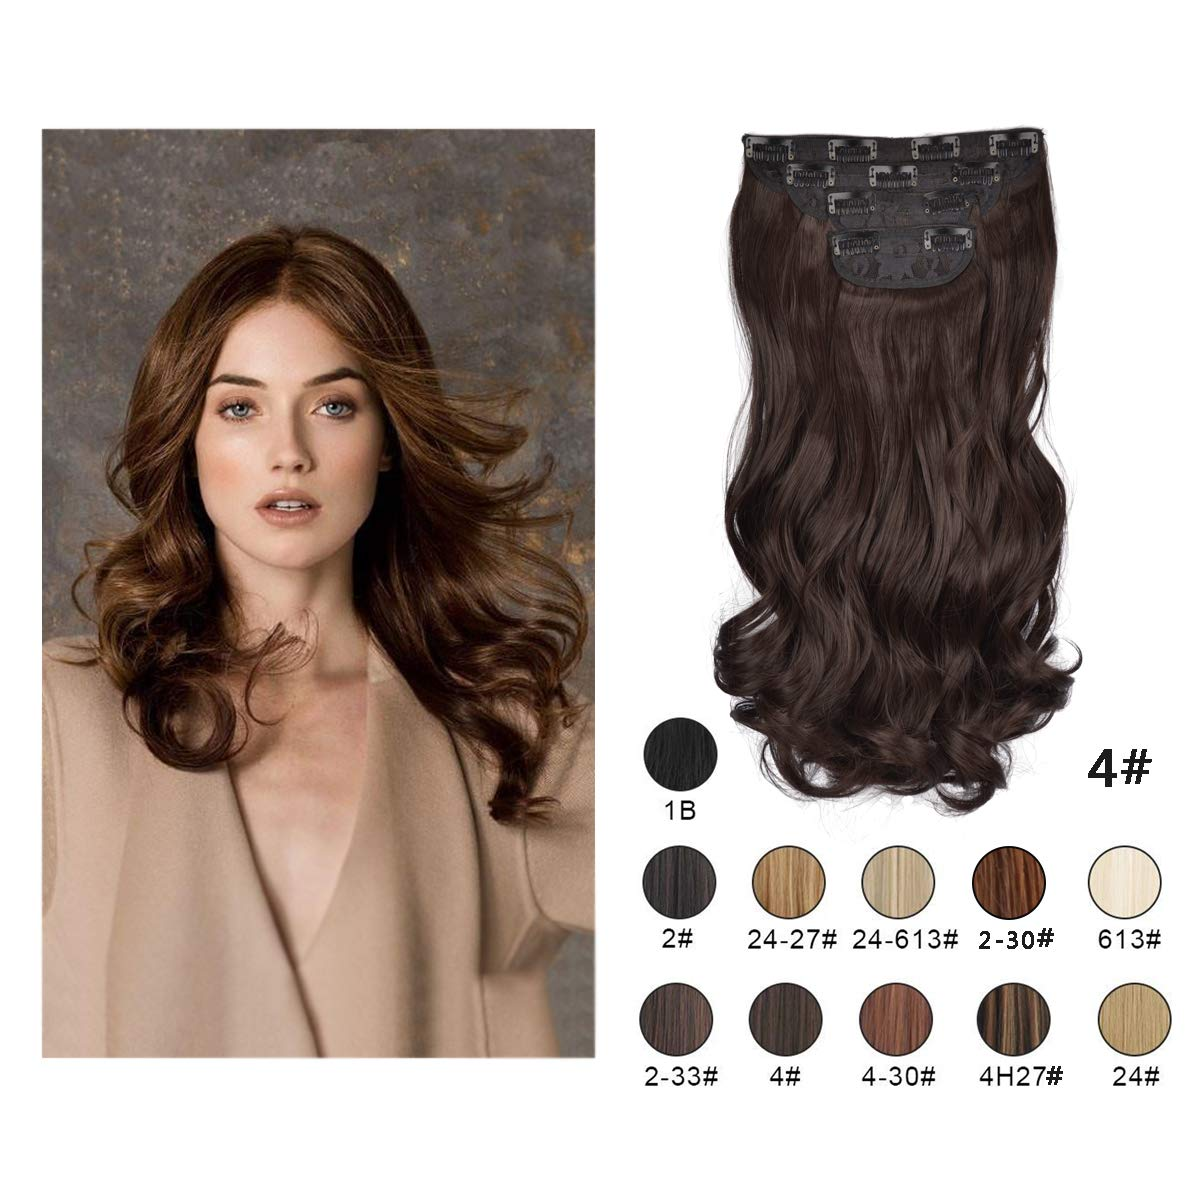 Barsdar 20'' Clips in Hair Extensions 4P11C Wavy Curly Hairpiece For Women lady Synthetic Heat Fiber Hair Extension (4#)